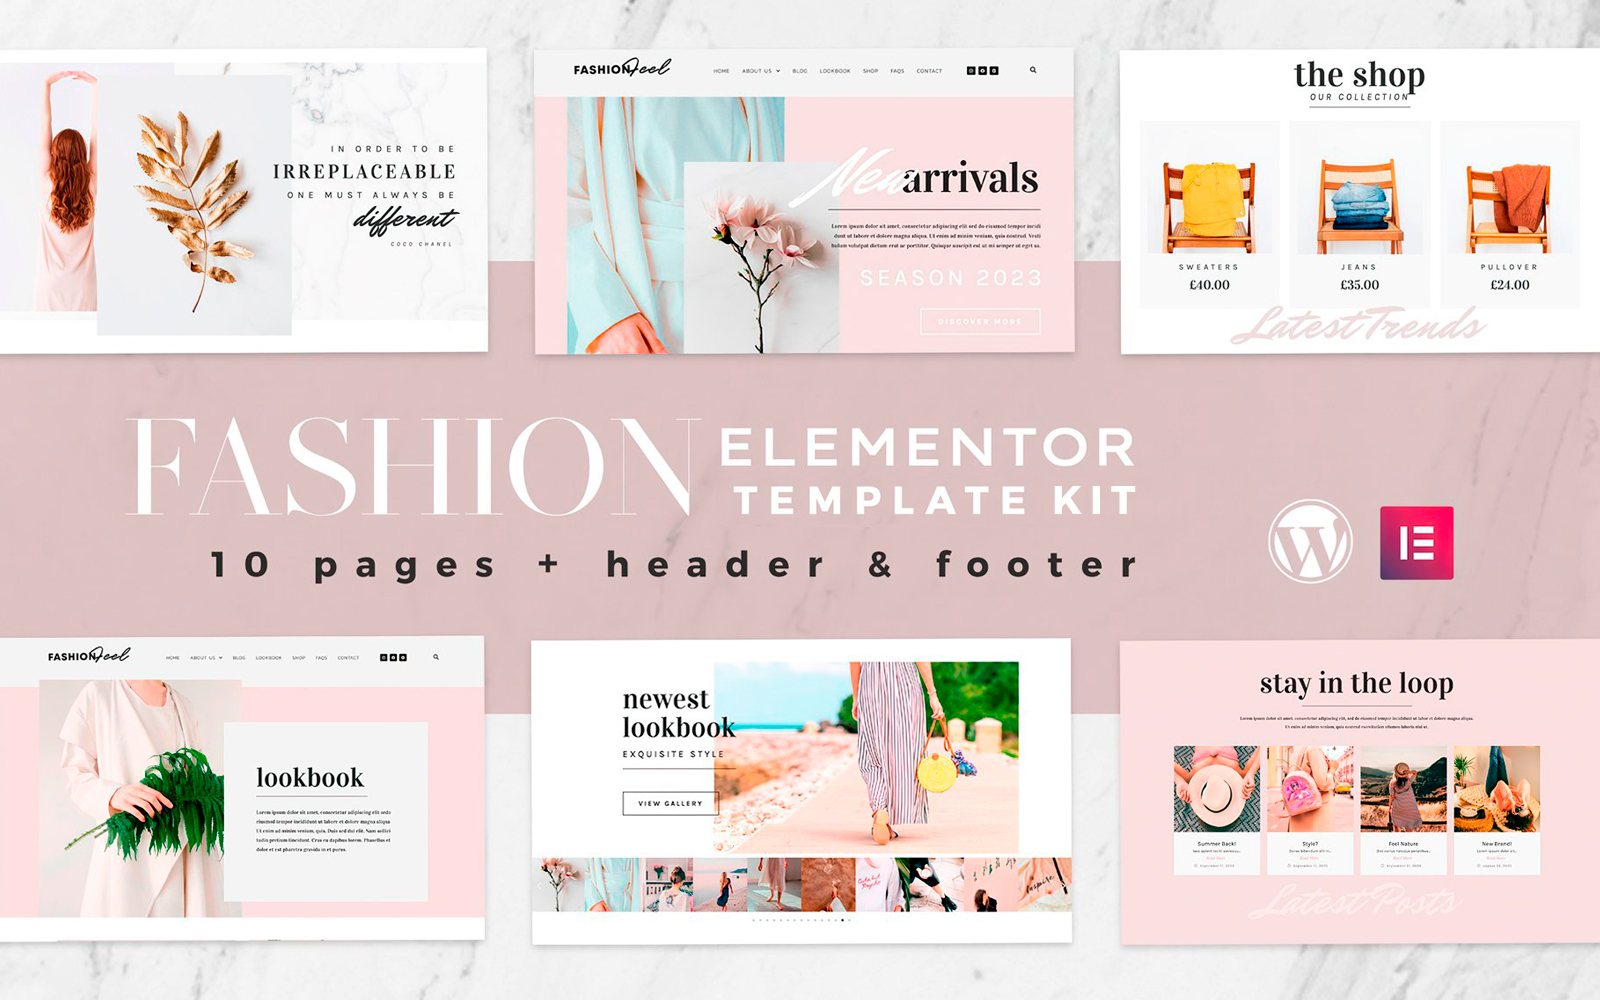 Fashion Feel - Elementor Template Kit - WooCommerce-compatibel